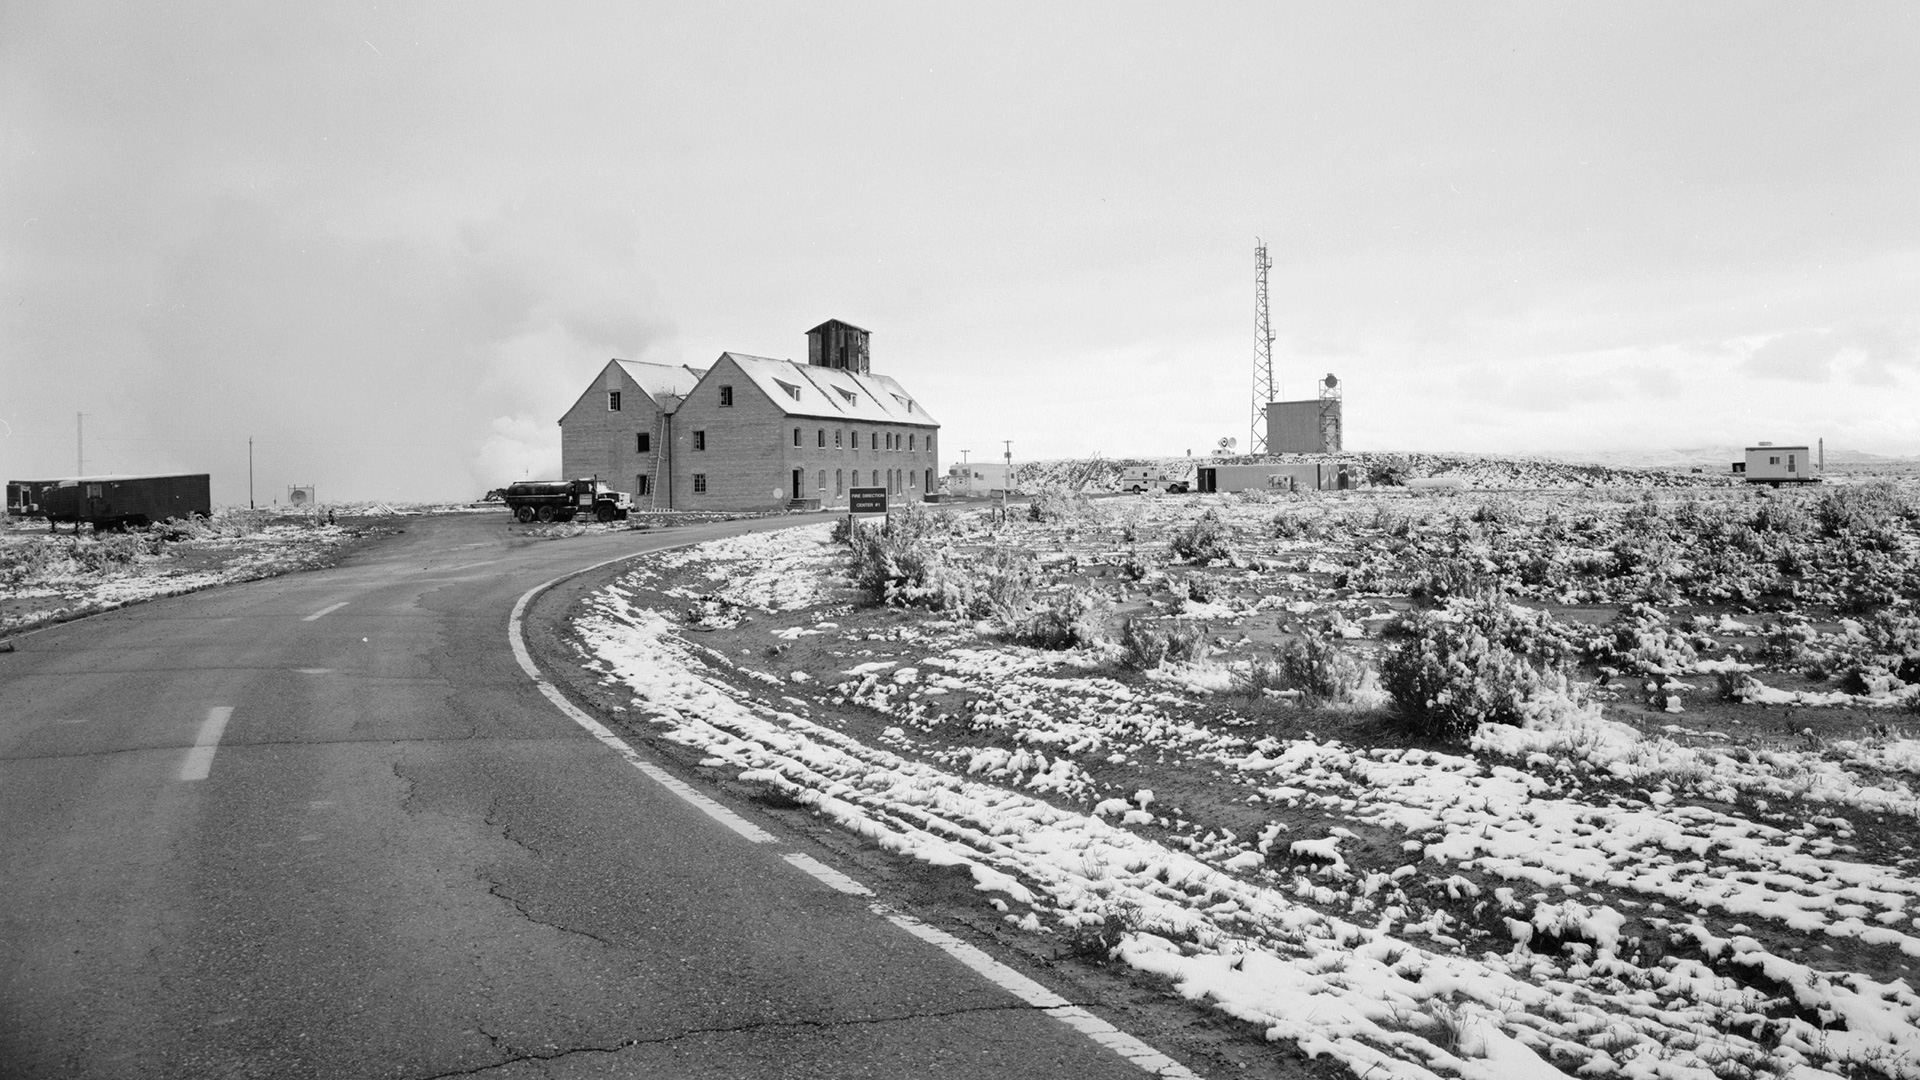 A view of the German village at the Dugway Proving Ground in Utah, built during World War II for testing firebombing tactics.